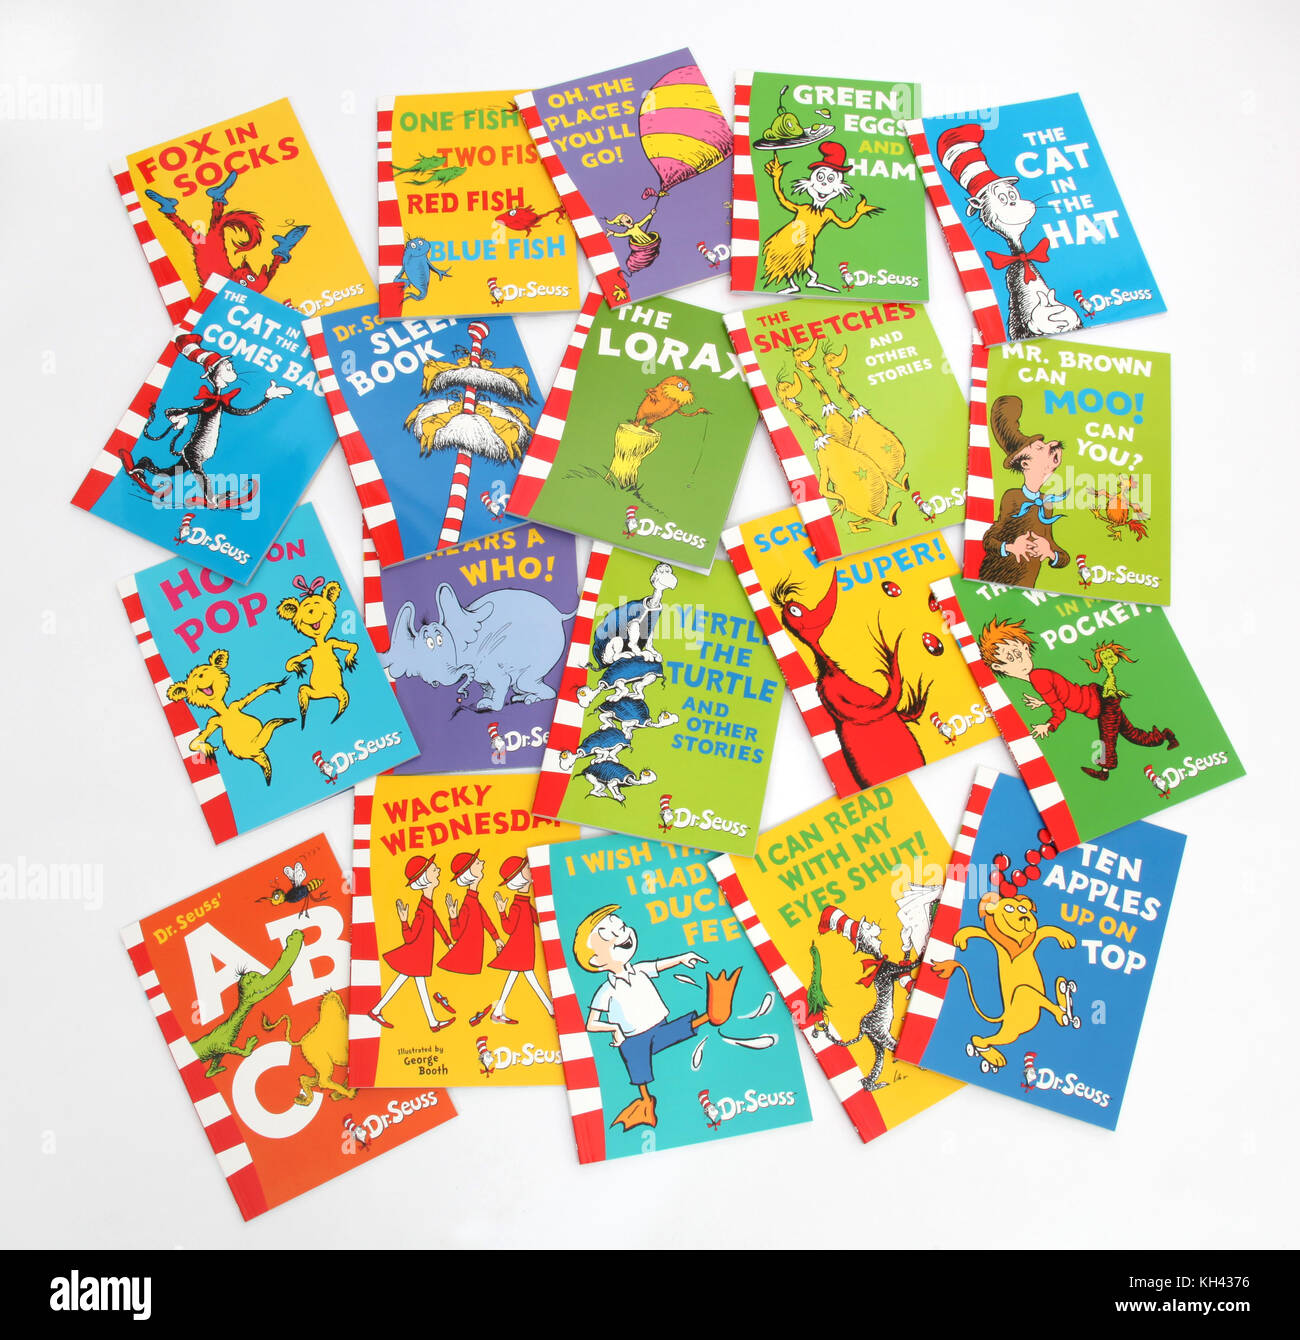 A collection of Dr Seuss books. - Stock Image